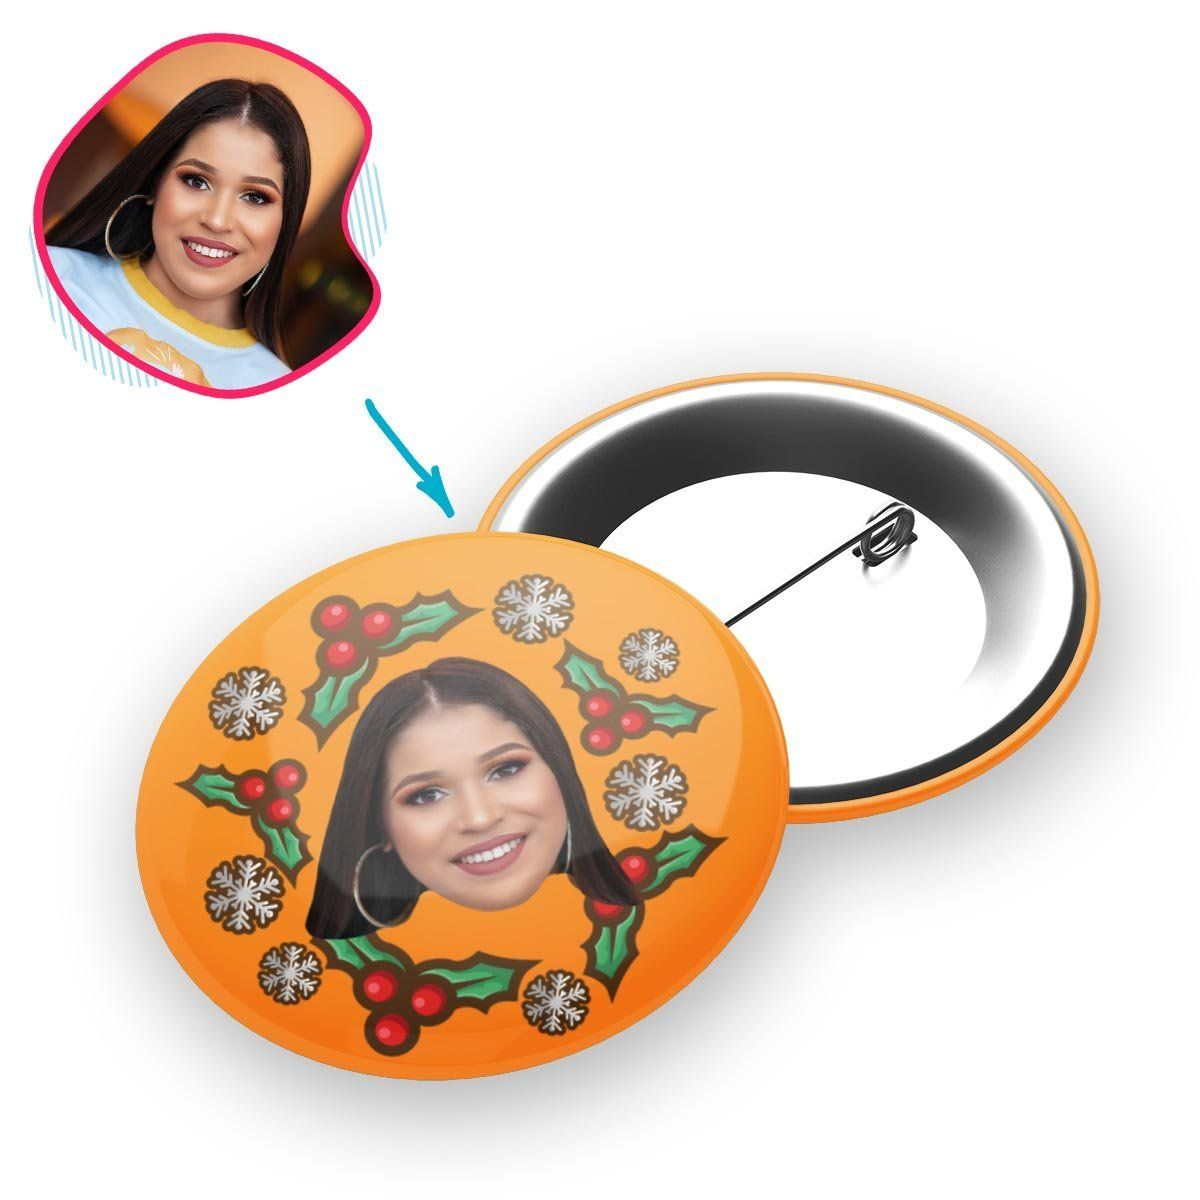 orange Mistletoe pin personalized with photo of face printed on it